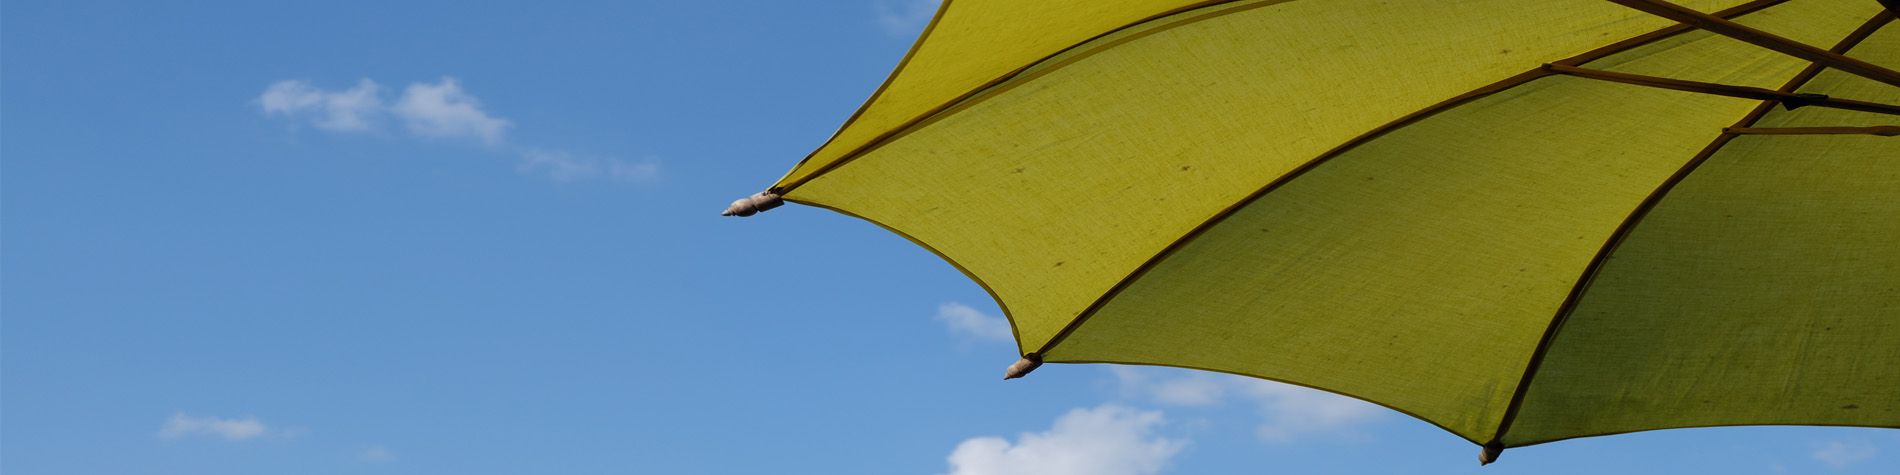 Umbrella against blue sky